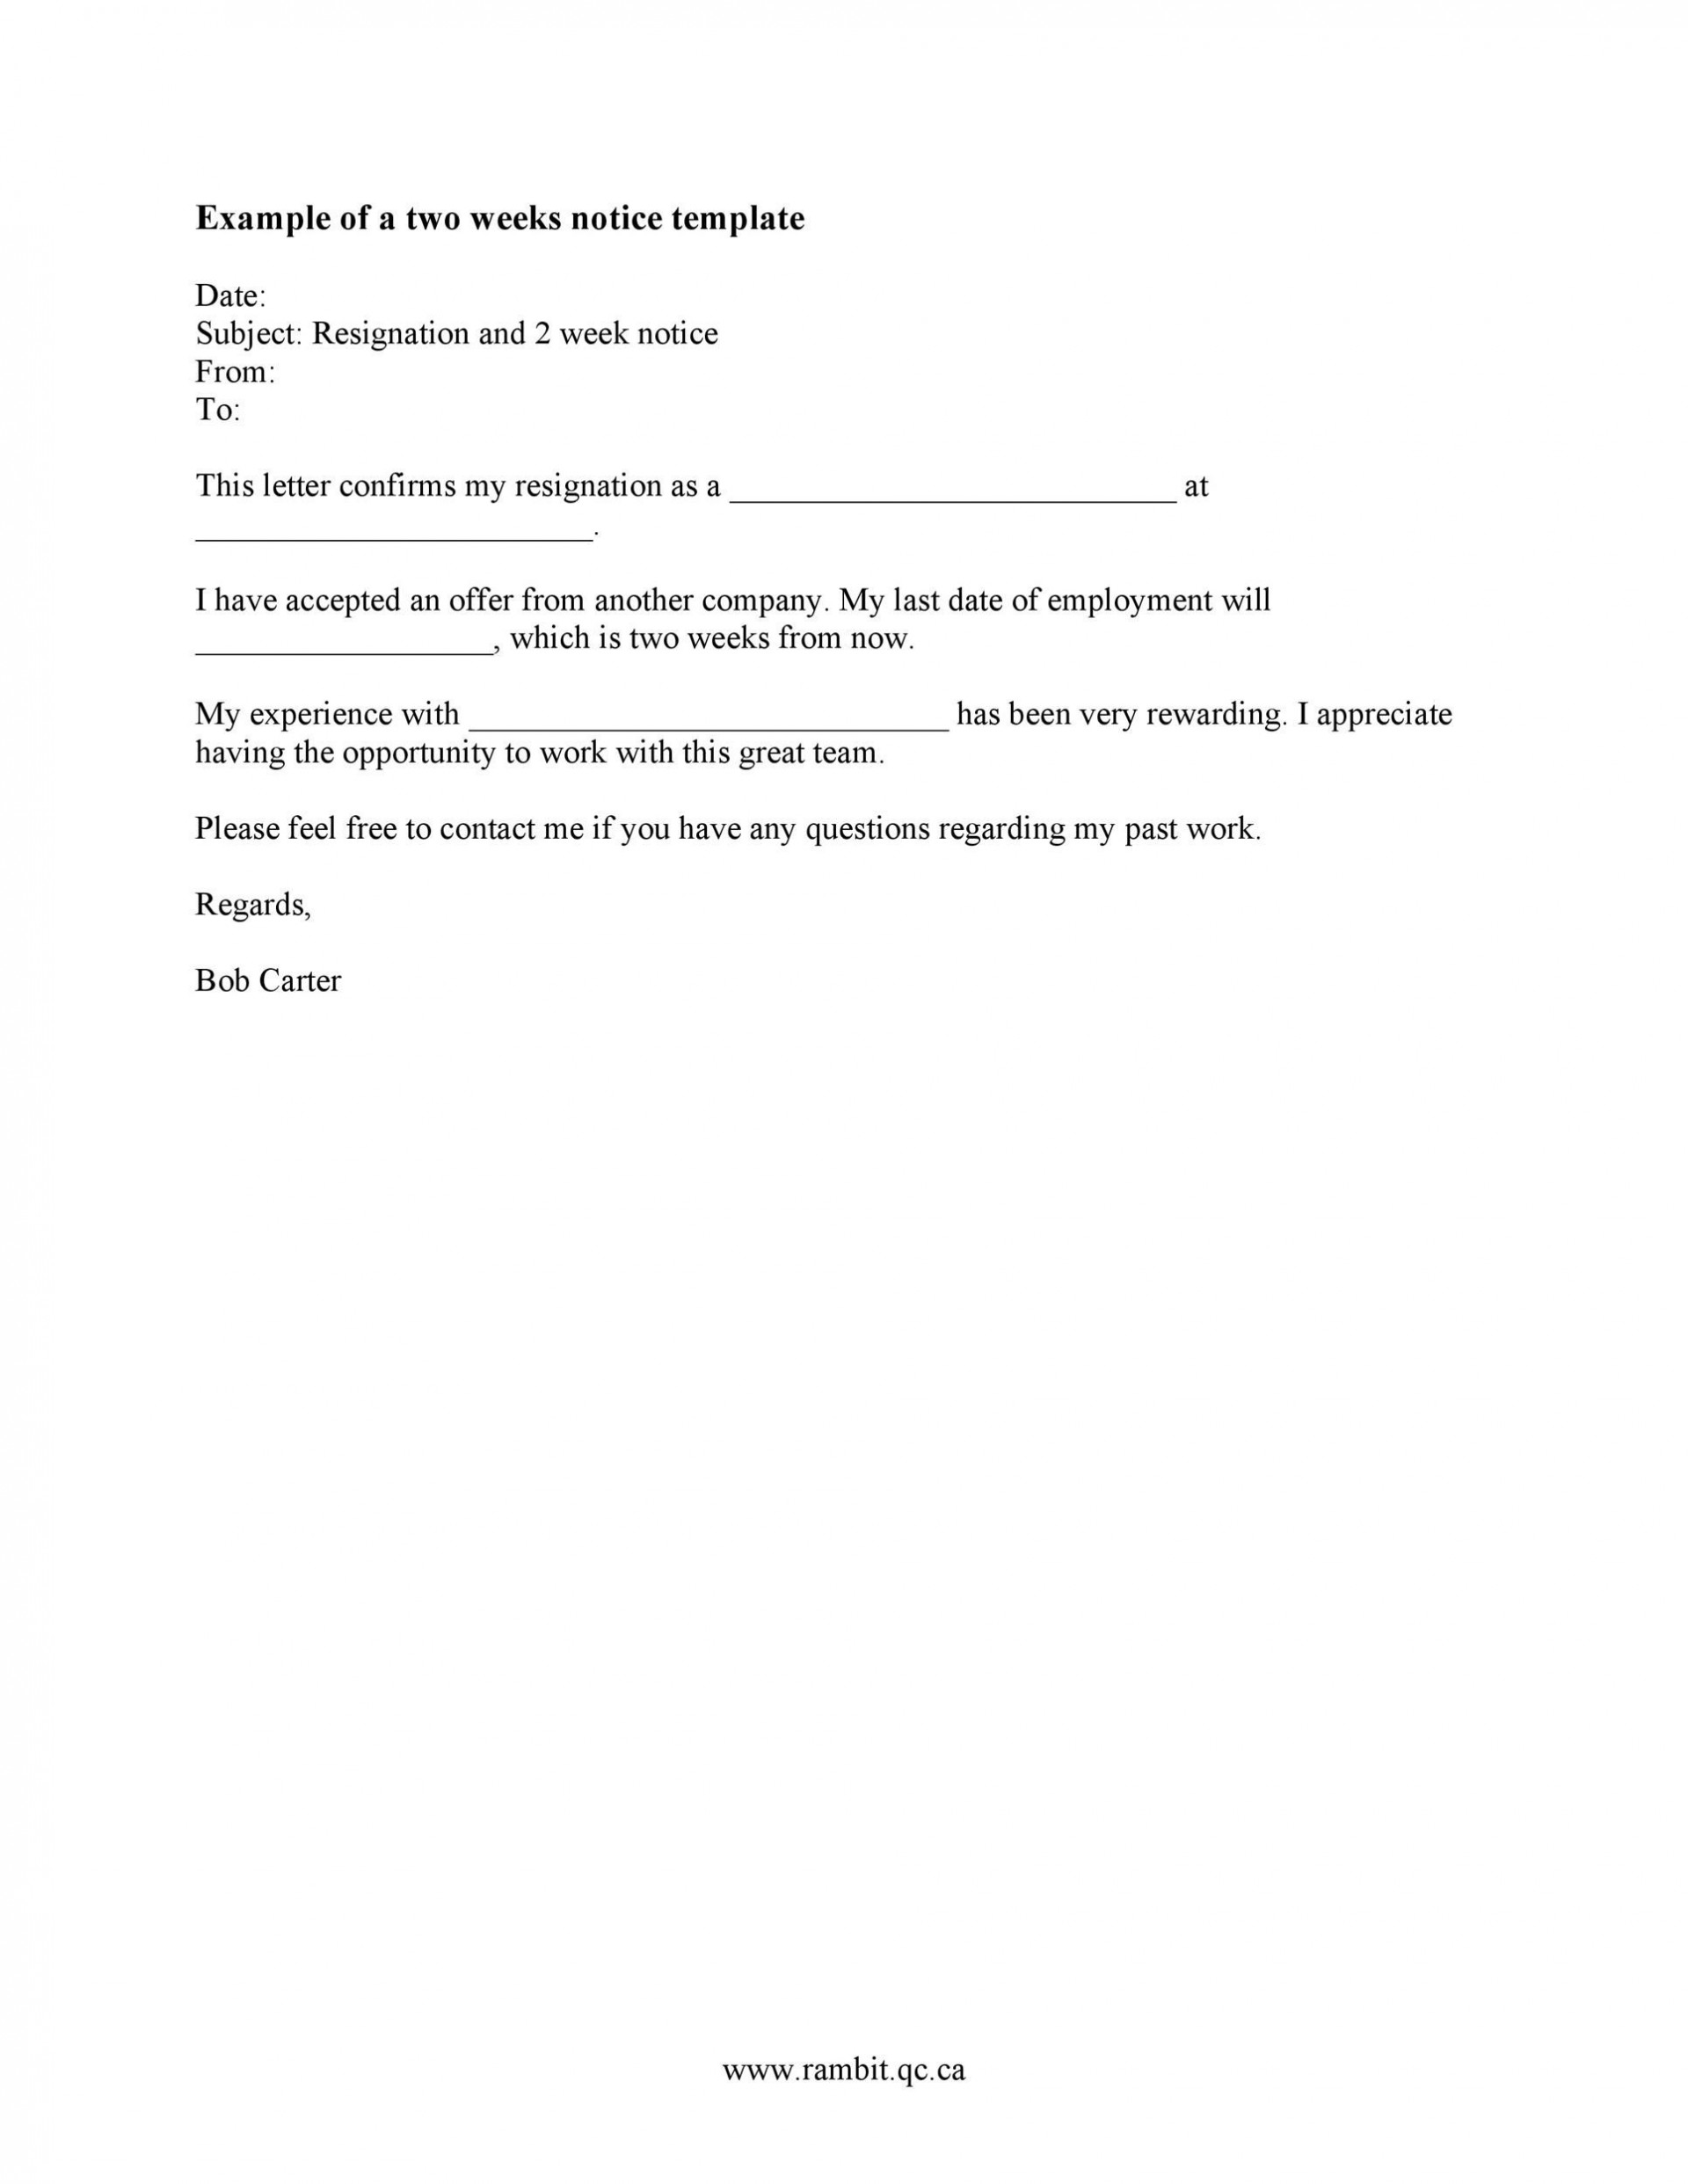 005 Rare Two Week Notice Letter Template Highest Quality  Free Professional 21920